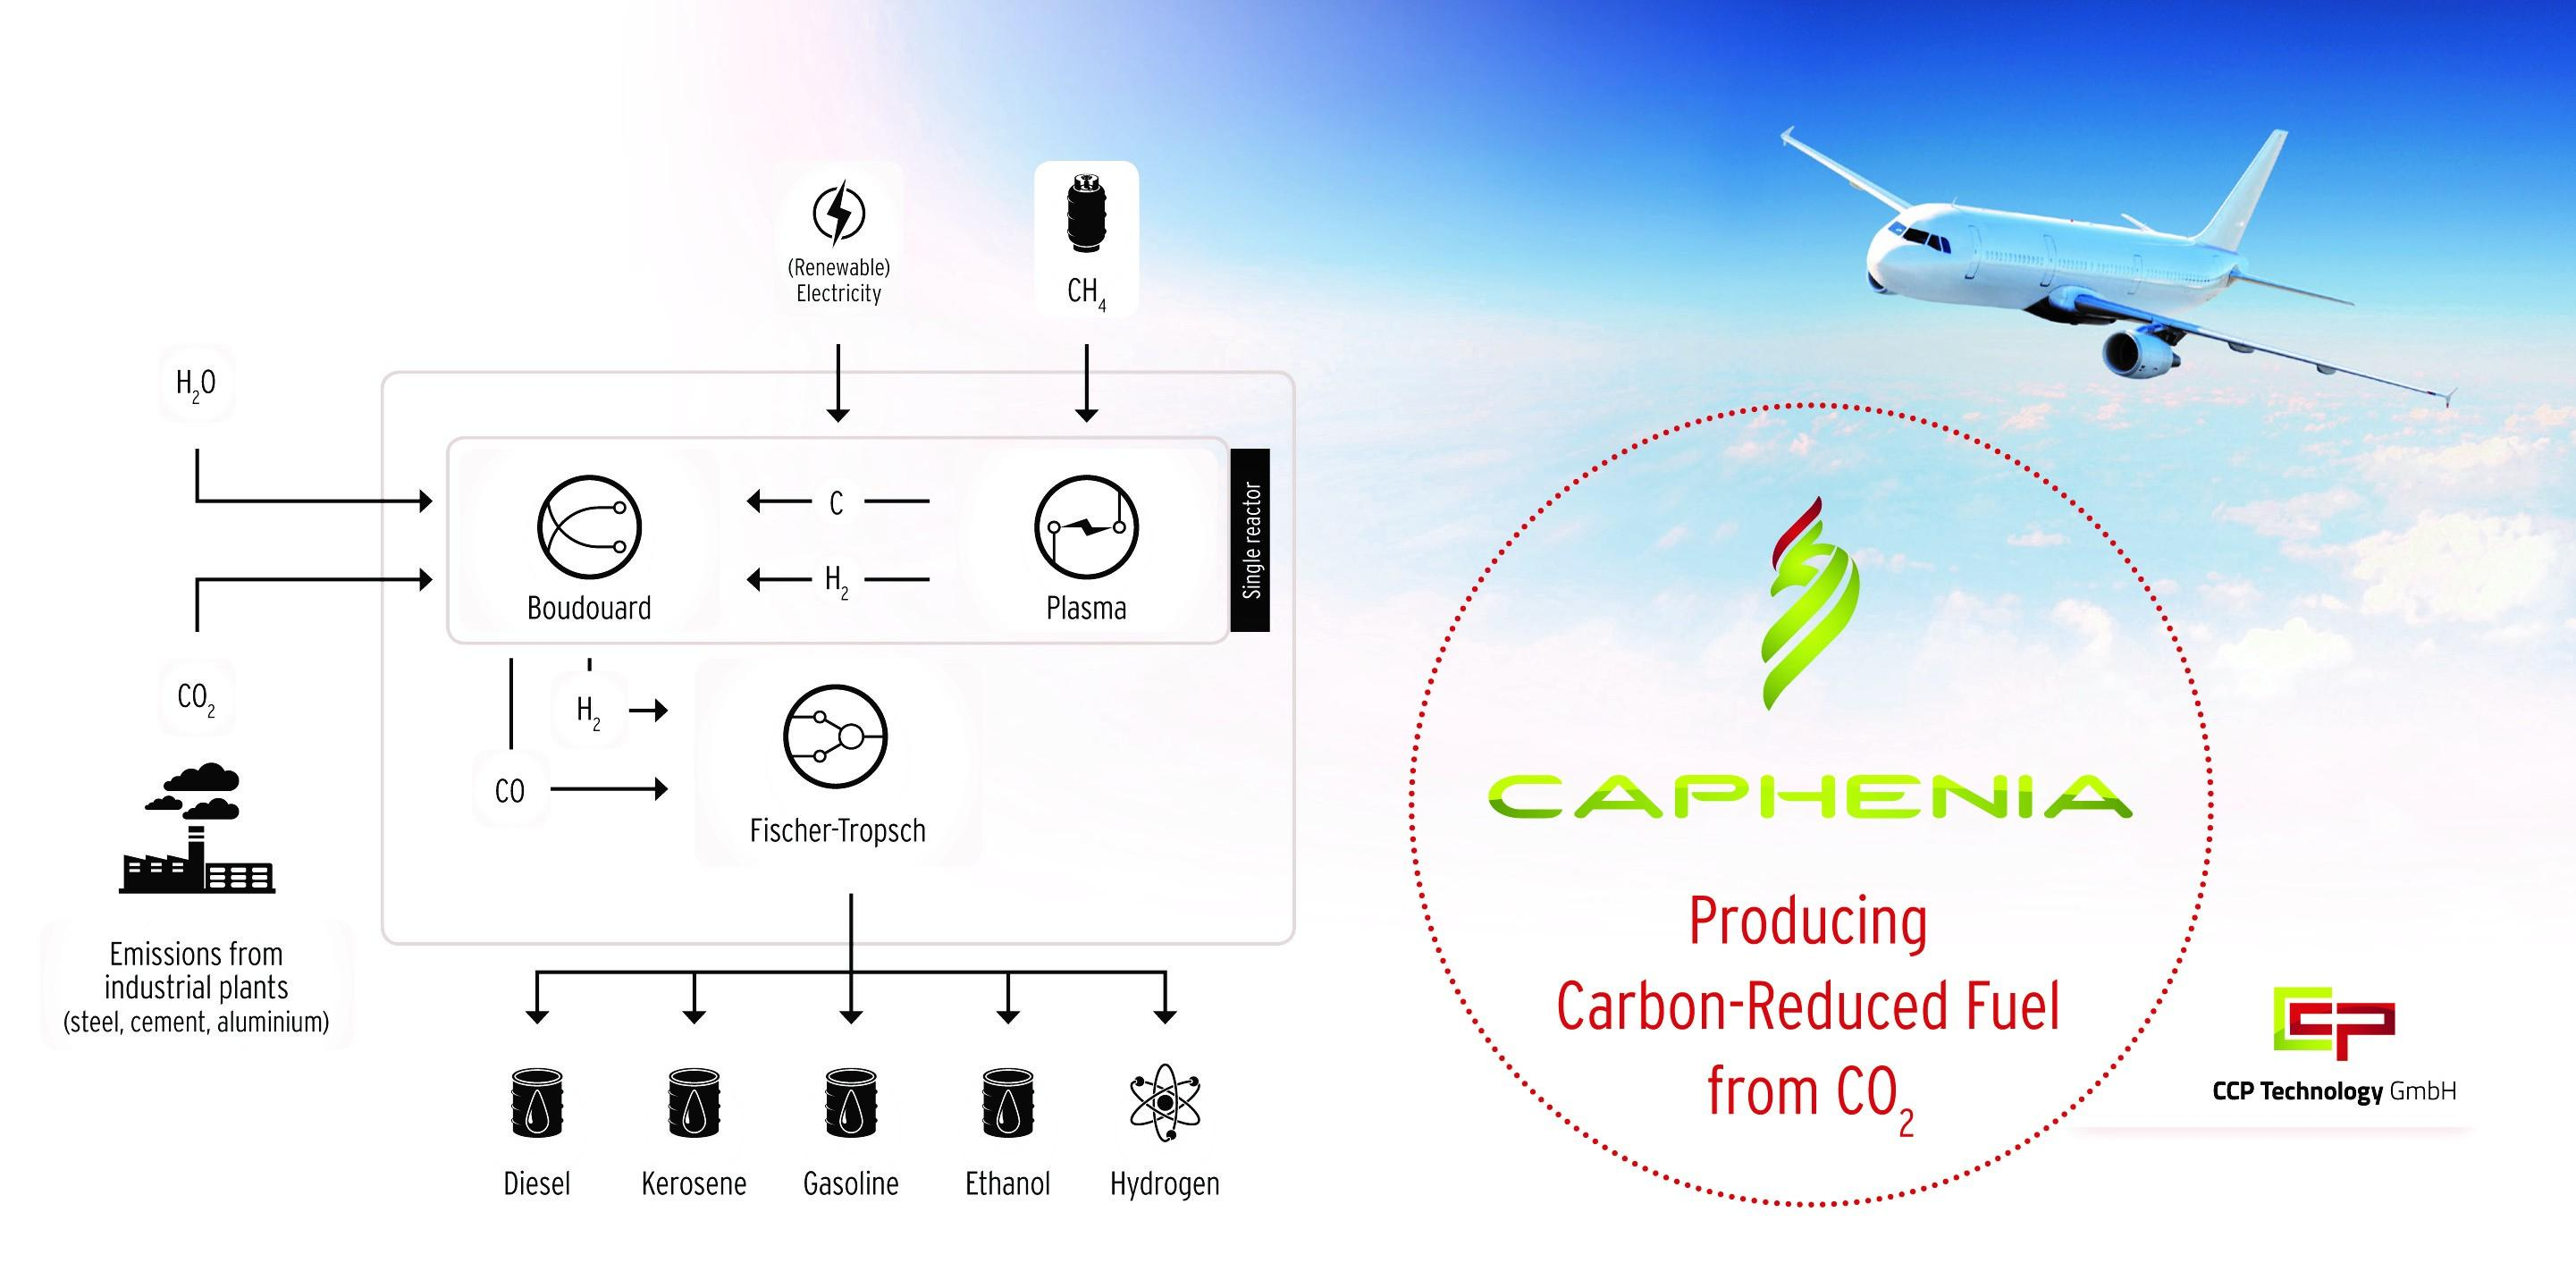 The innovative CAPHENIA process can significantly reduce CO2 emissions from the transport sector.